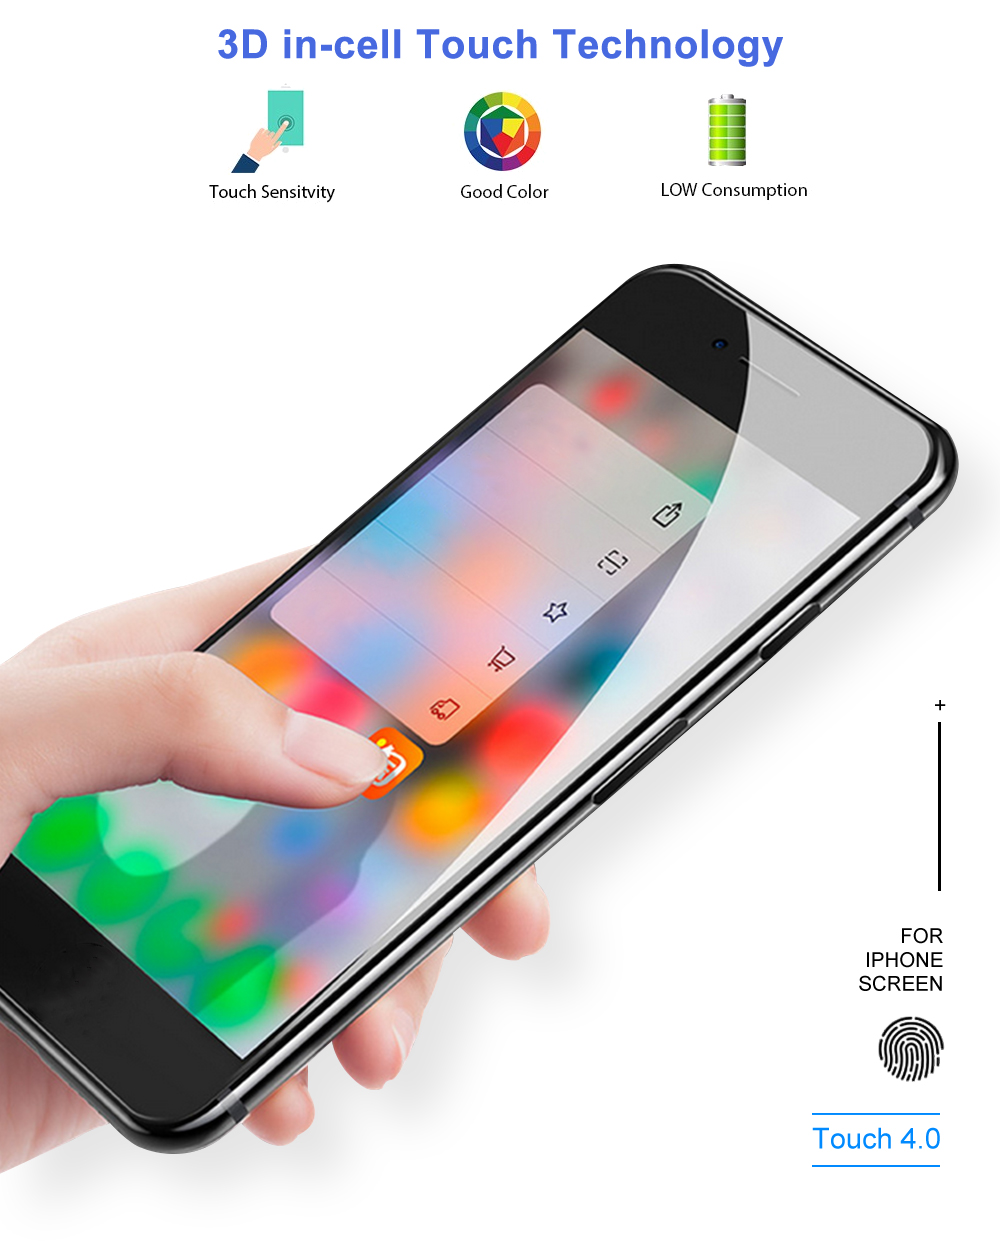 3.3D-Touch